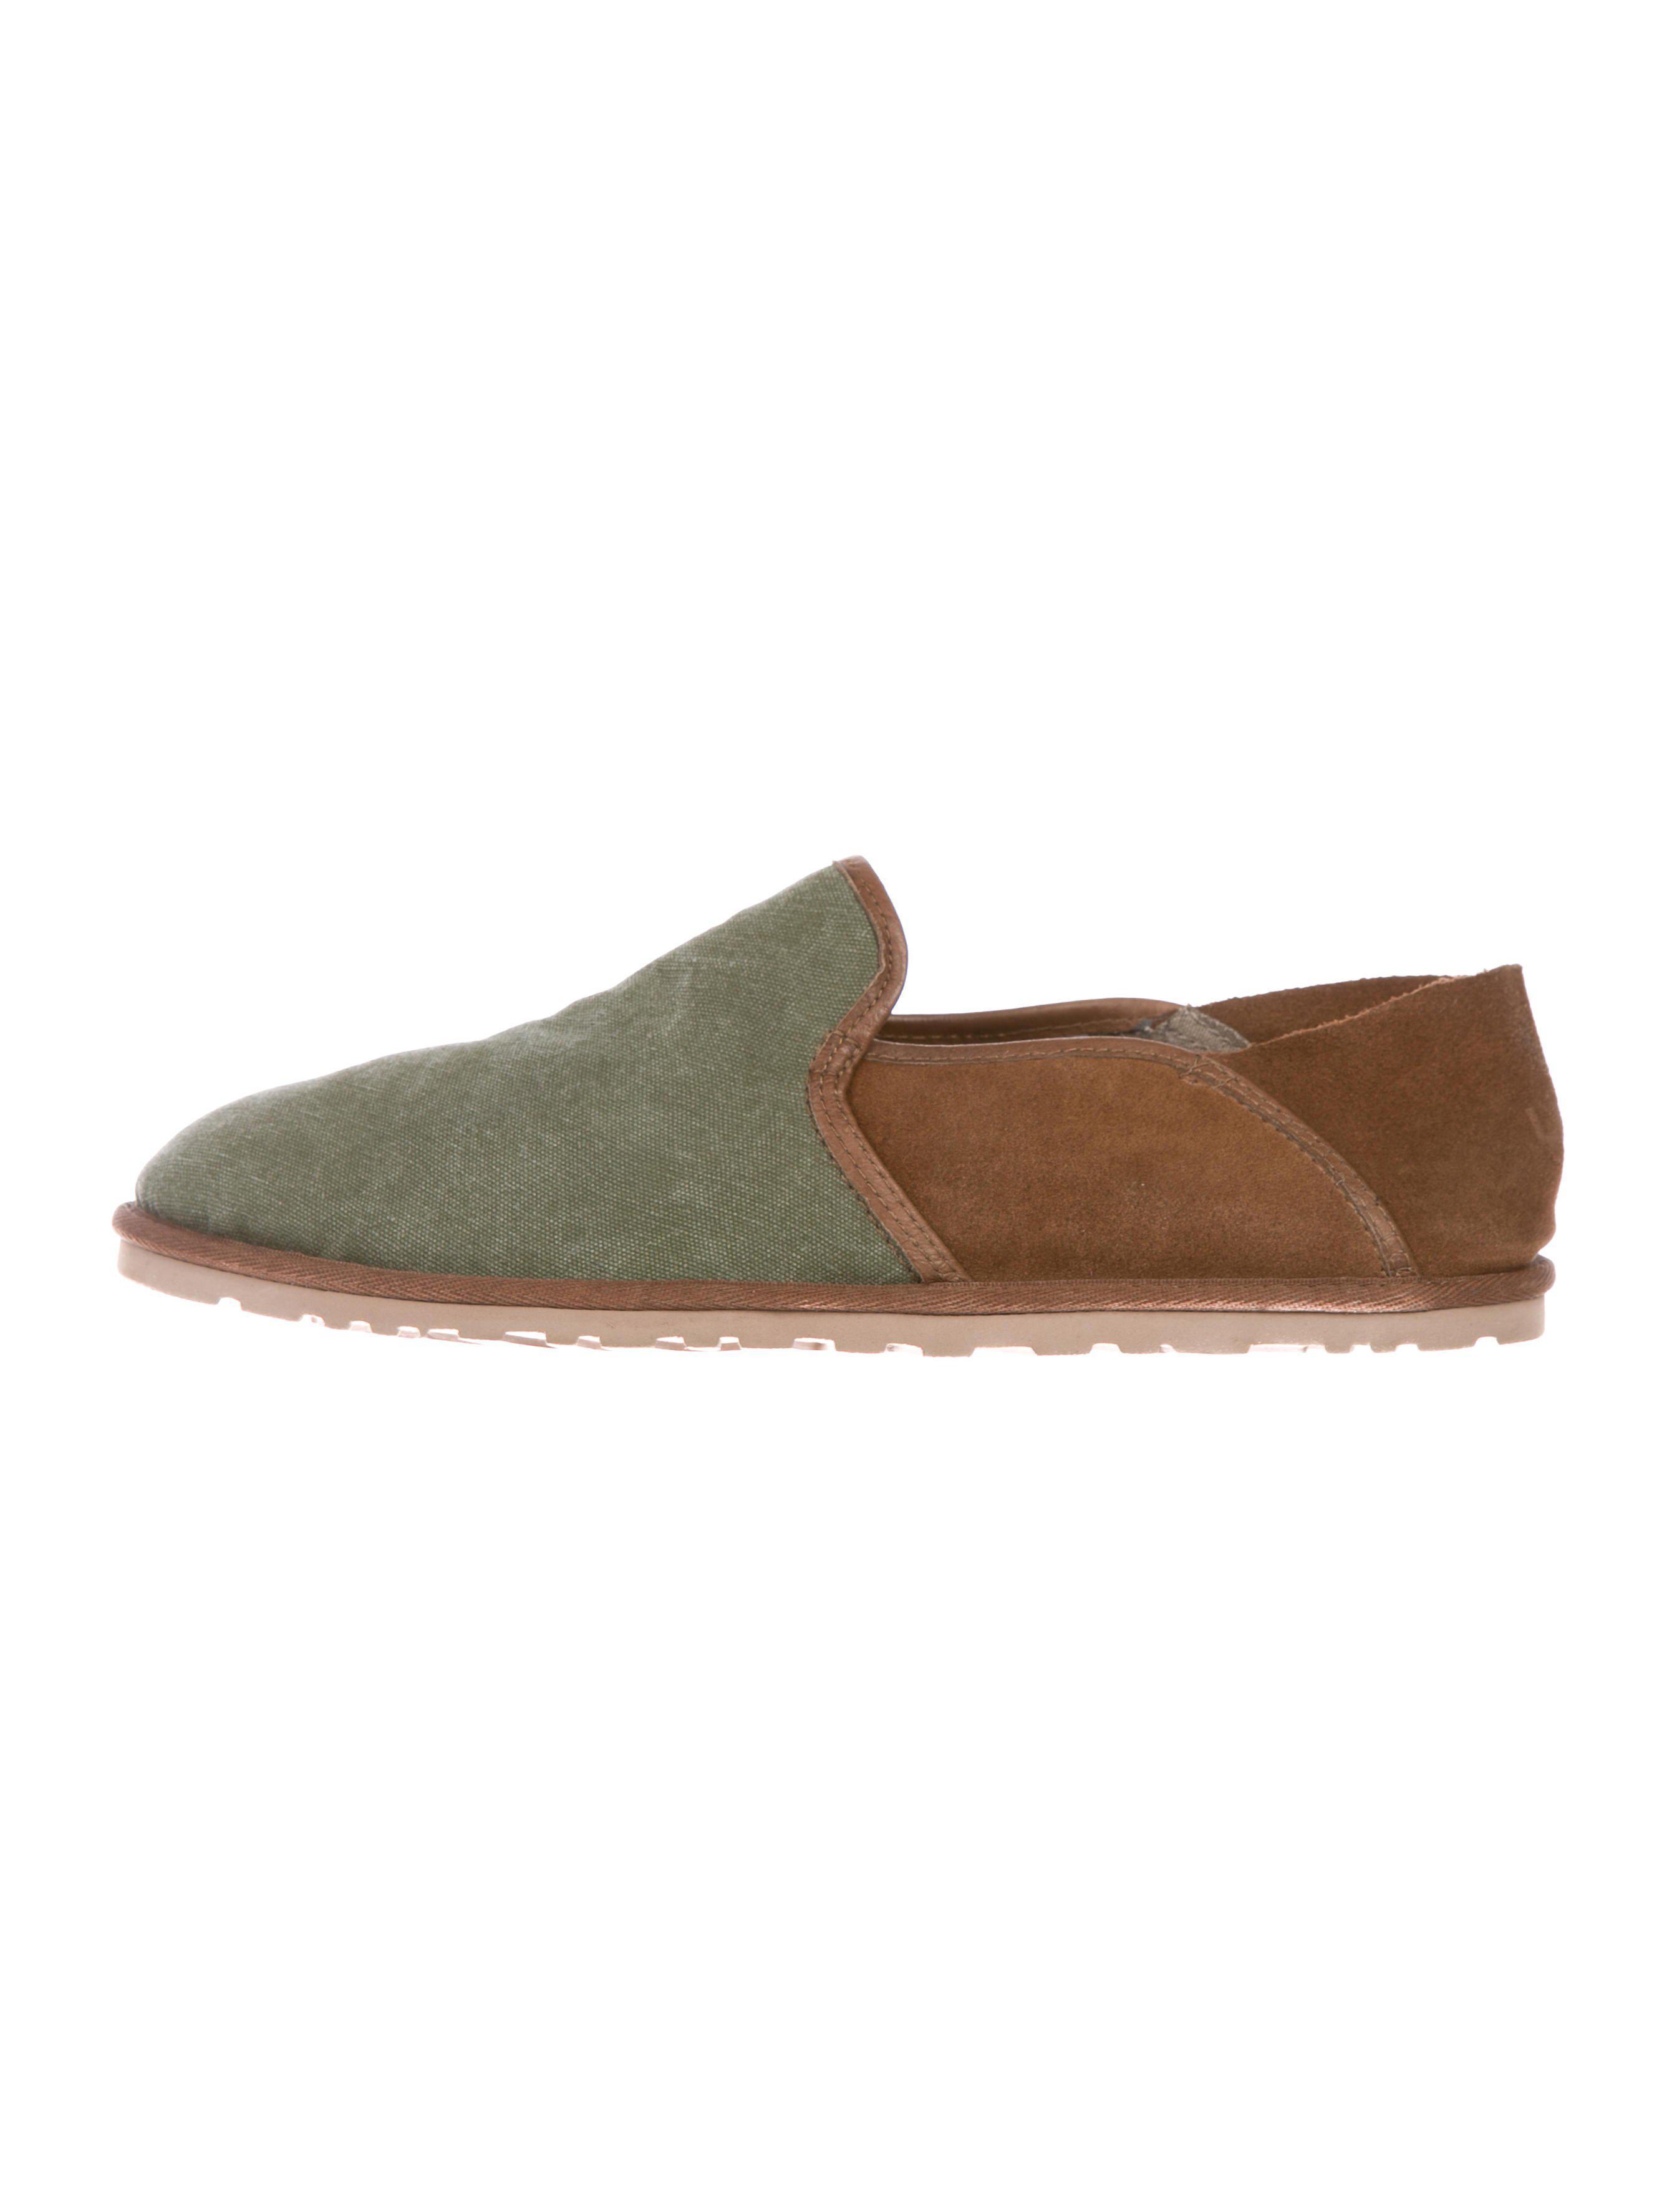 UGG. Men's Green Canvas Shearling-lined Moccasins